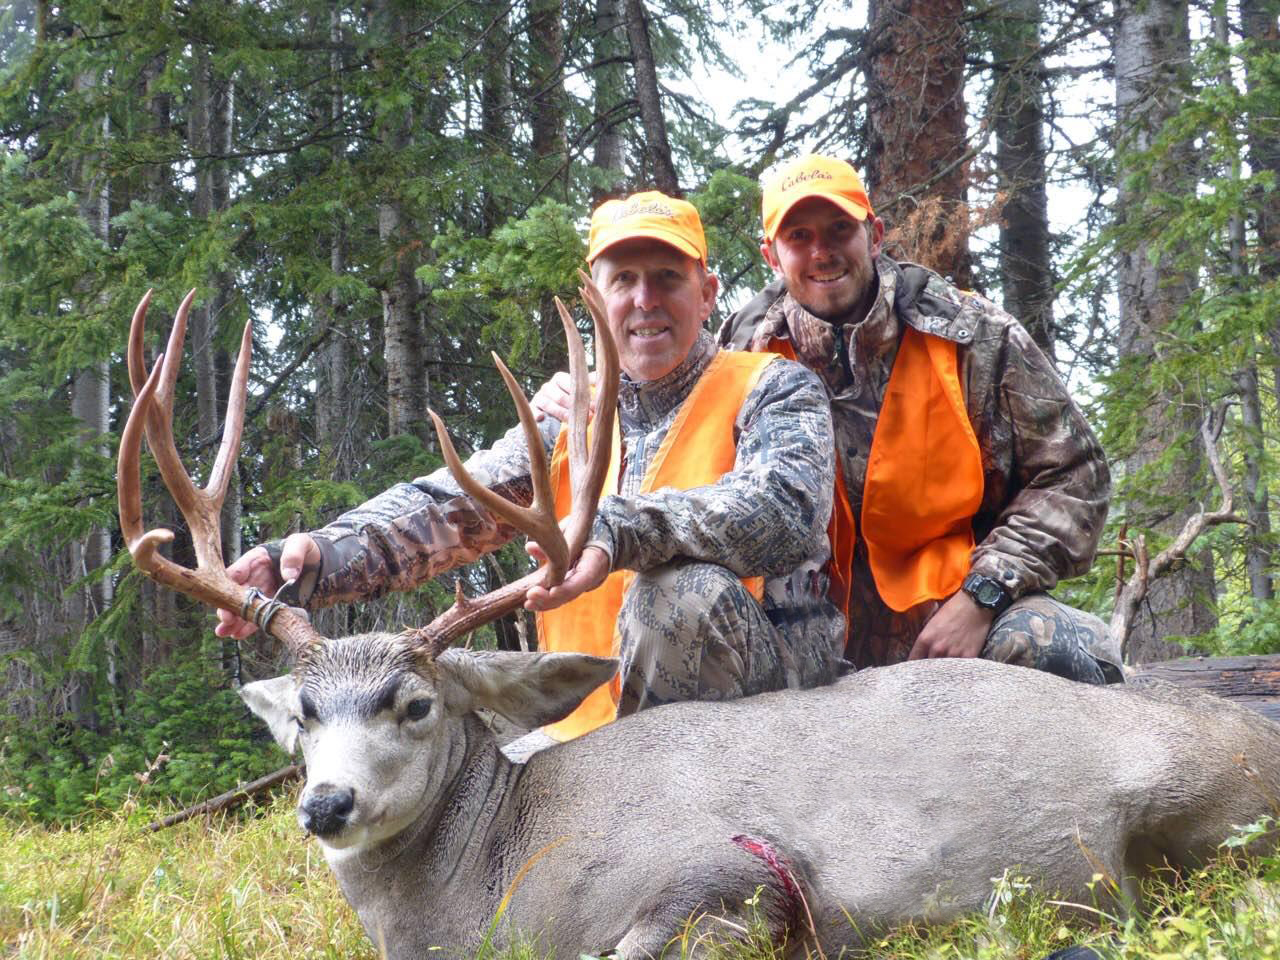 Colorado Hunter Testimonials (Monster Muley and Bowhunter's Bull) - Colorado Outdoors Online